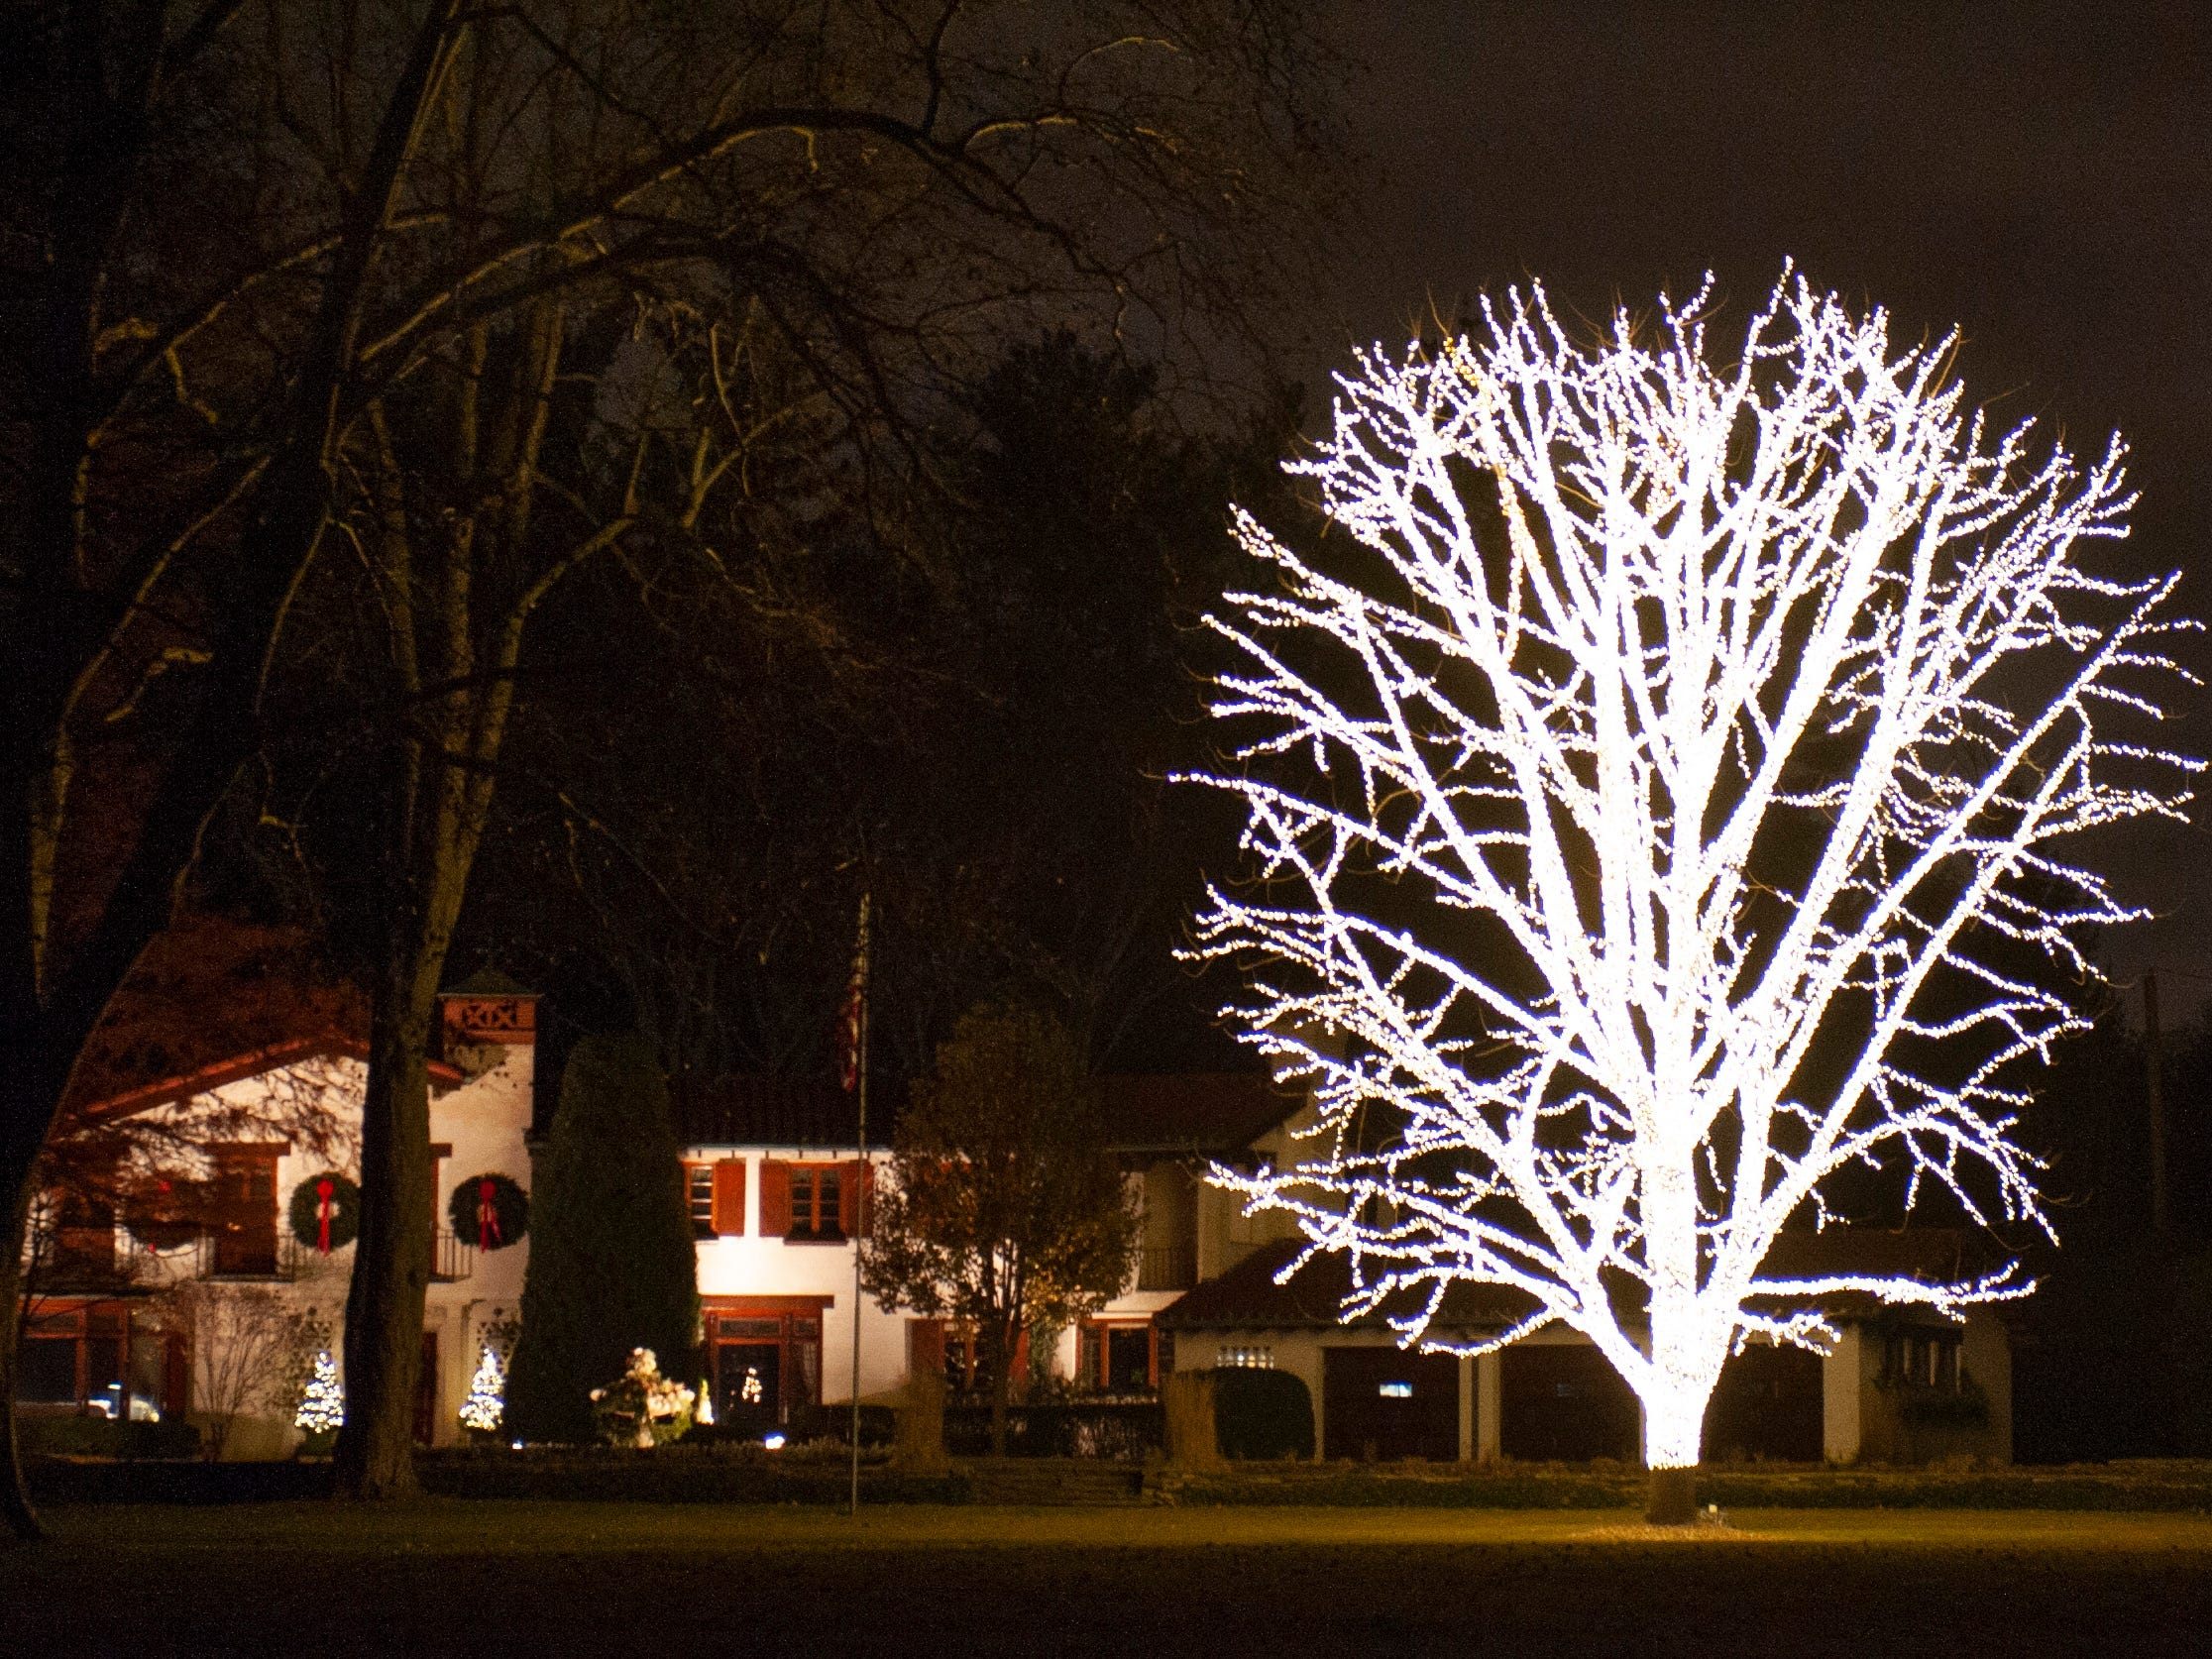 An enormous tree, completely lit up for the holidays, stands out in front of a grand mansion along Lake Shore Drive in Grosse Pointe Shores on Tuesday December 17, 2018. (John T. Greilick, The Detroit News)